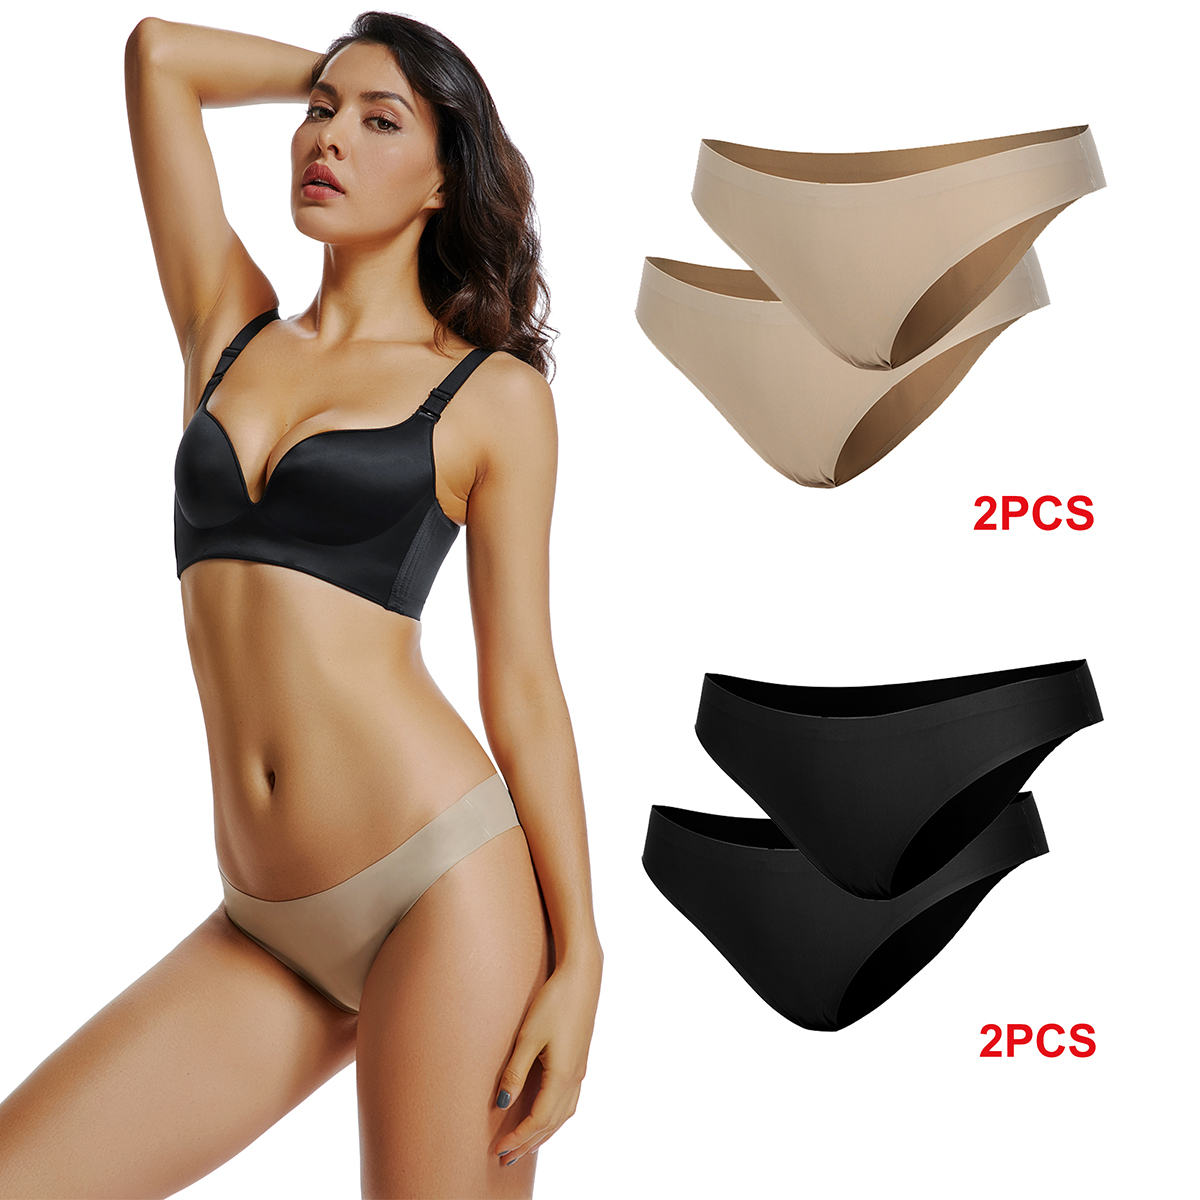 Briefs Panties for Women Seamless Mid Rise Full Coverage Hipster Quick Dry No Show Underwear 2 Pack